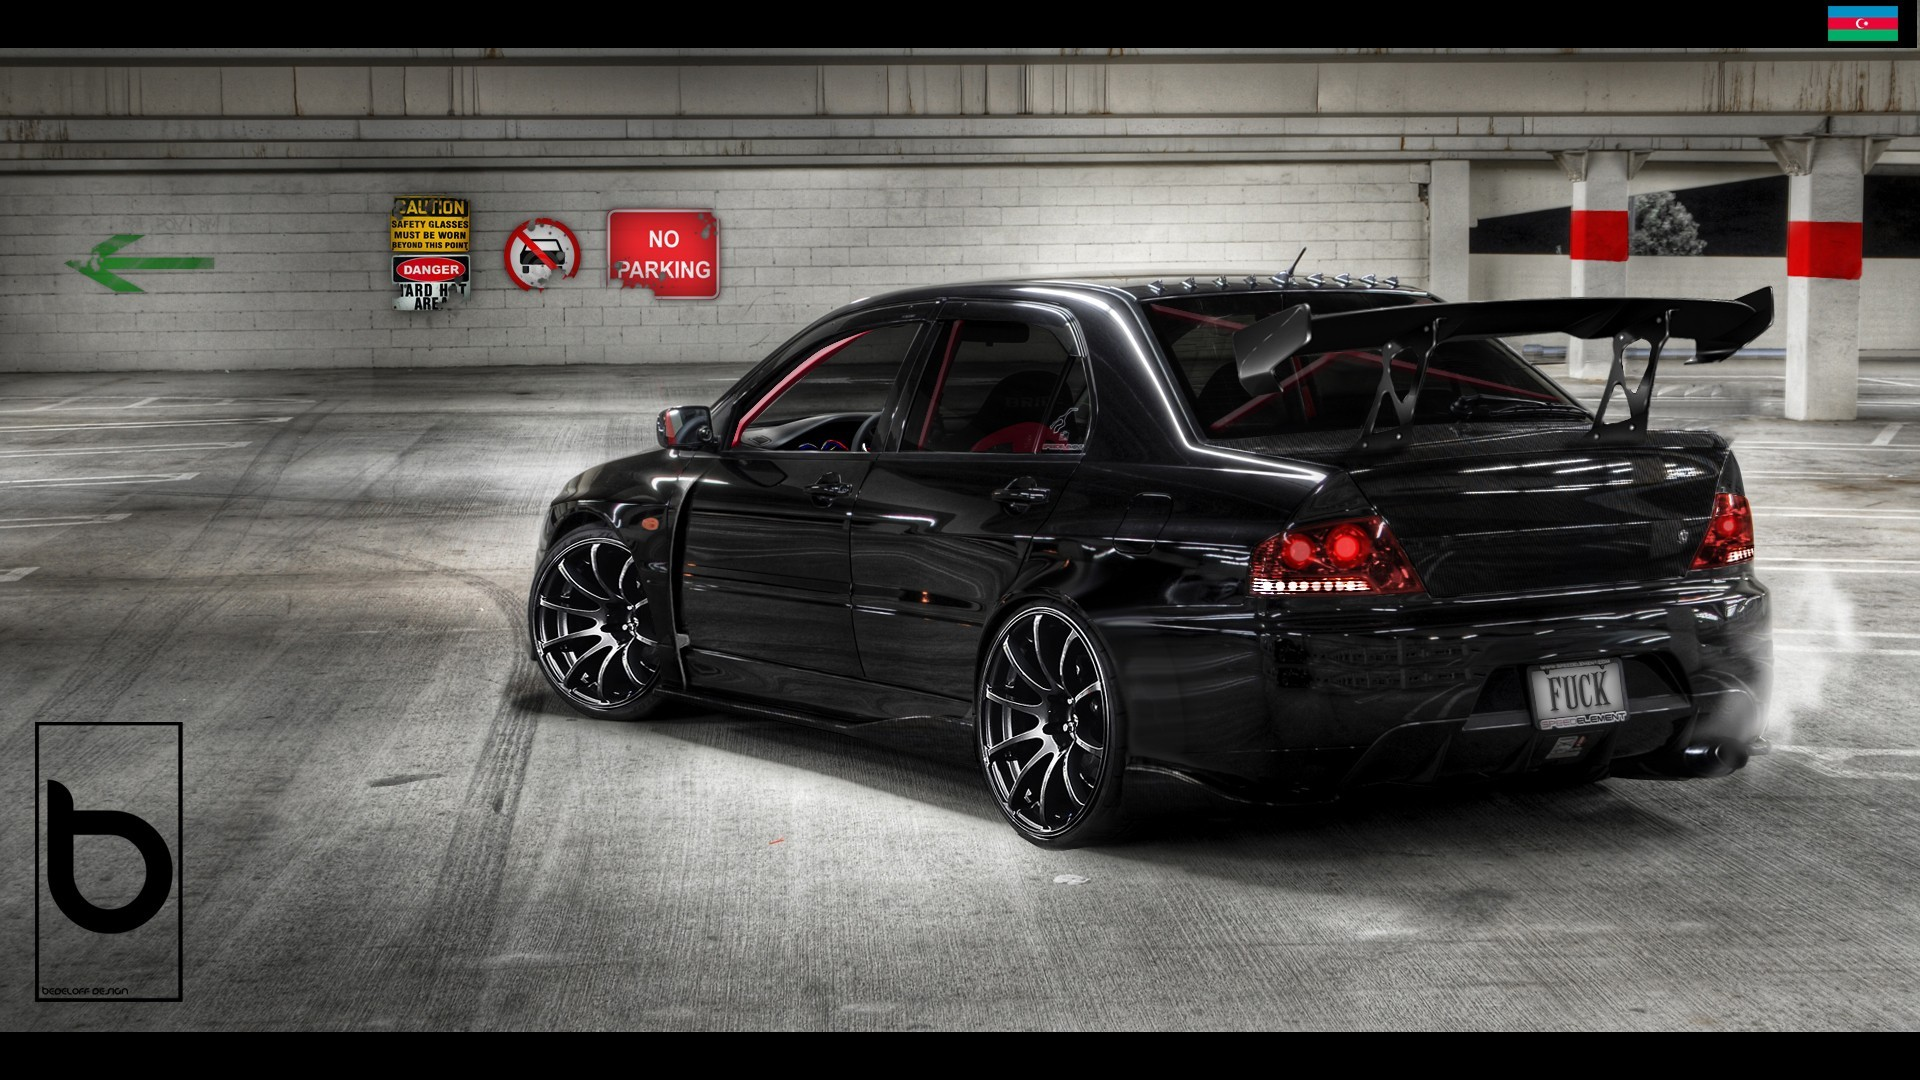 Car 5760x1080 Wallpaper Car Jdm Mitsubishi Mitsubishi Lancer Wallpapers Hd